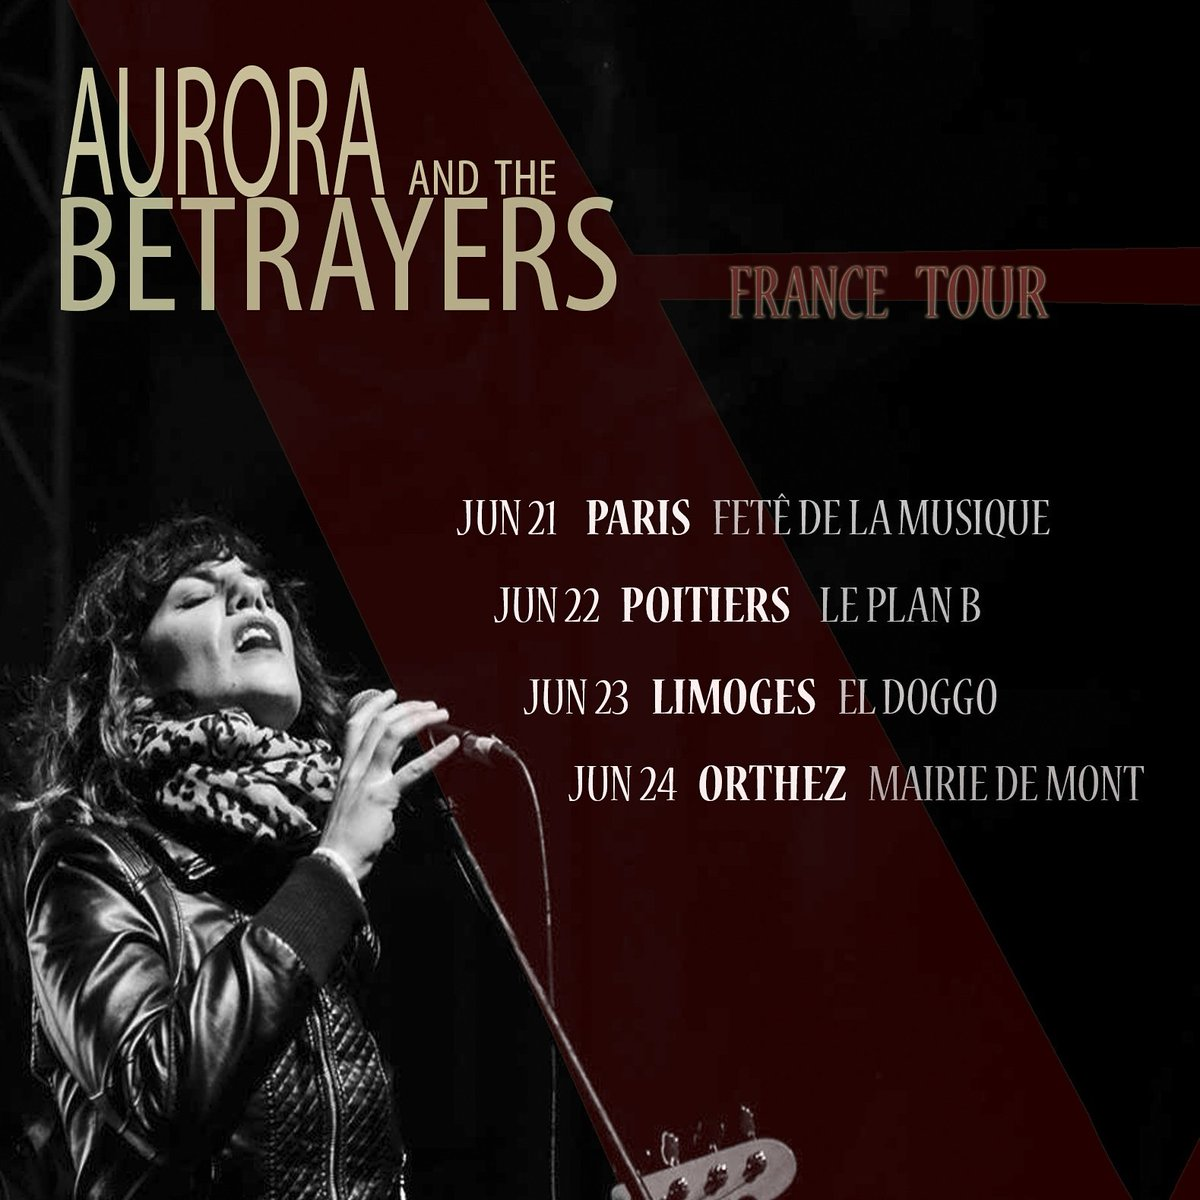 #FRANCE #Tour!!! This week @AuroraBetrayers  in France for the first time.  INFO:  http://www. auroraandthebetrayers.com  &nbsp;  <br>http://pic.twitter.com/rvaieaVEo4